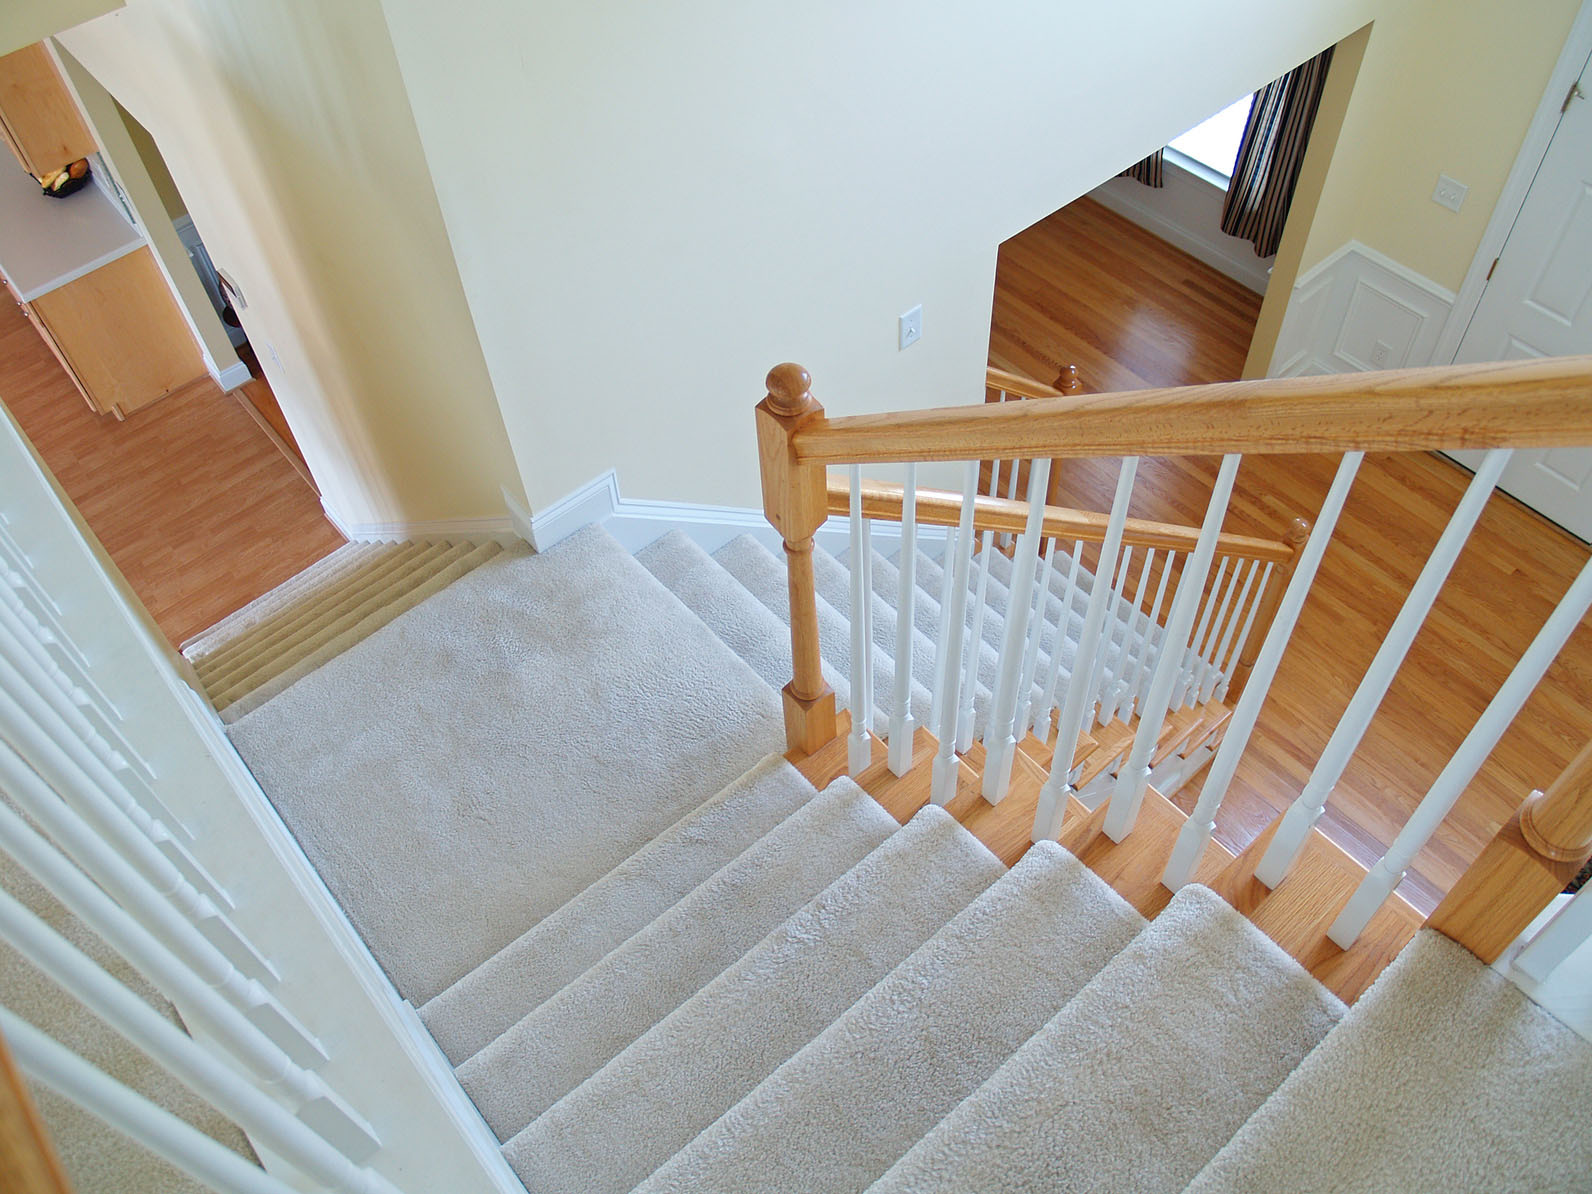 Elegant How To Install Carpet Protector On Stairs Solution For